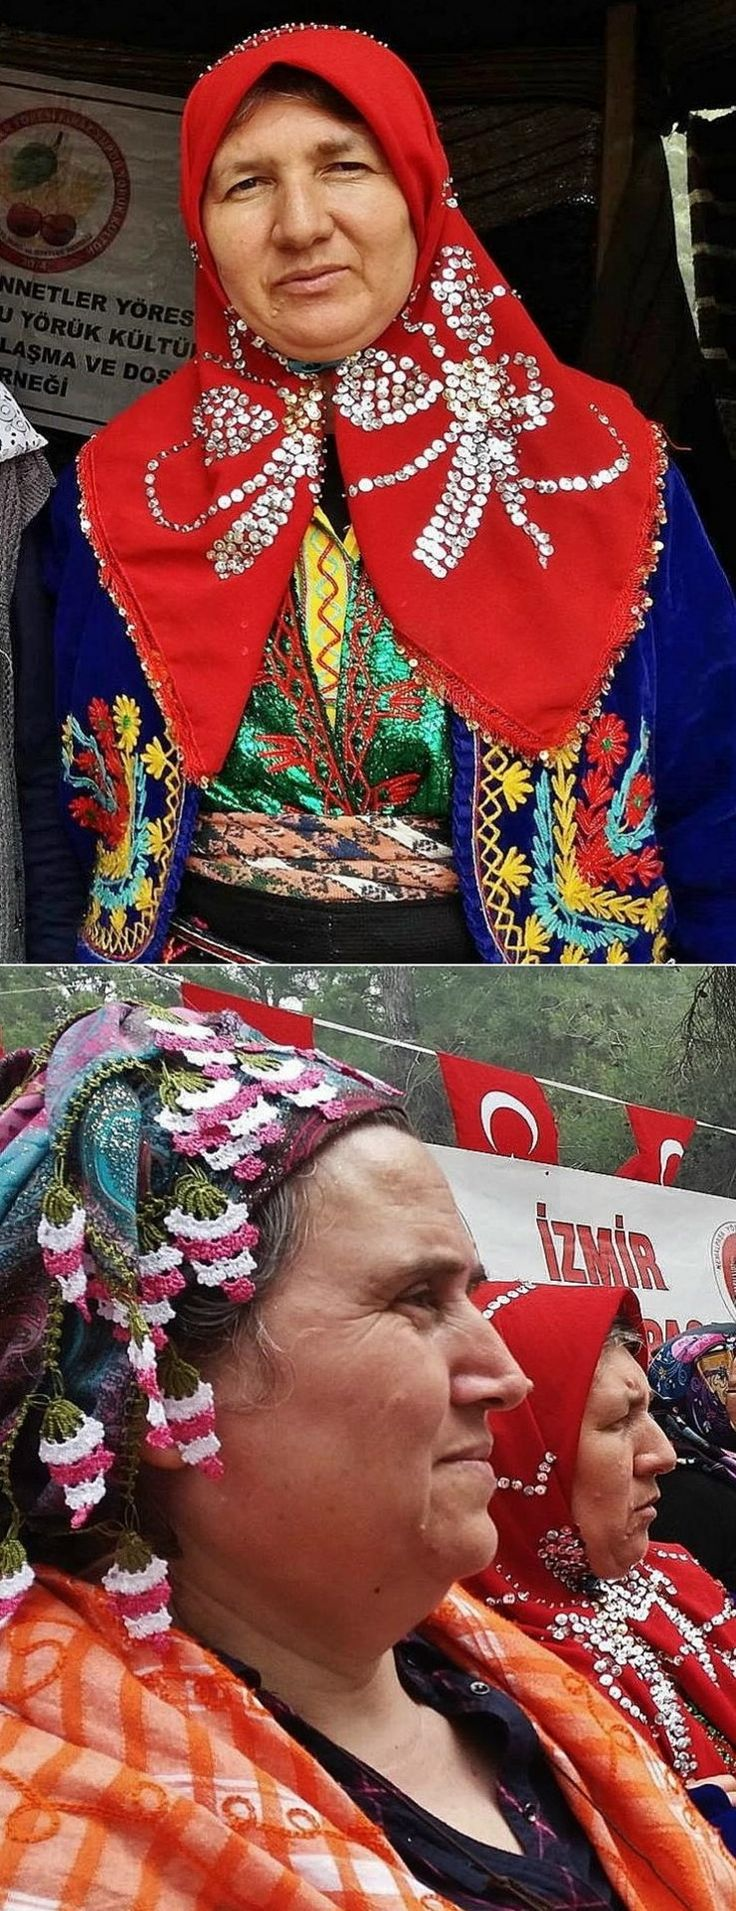 Two headscarves as worn by Yörük women from the Gördes district (110 km northeast of Manisa town). Top: a 'pullu yazma' (headscarf adorned with sequins). Bottom: a 'oyalı yazma' (headscarf edged with Turkish lace). Recent picture: at a Yörük festival in 2015.